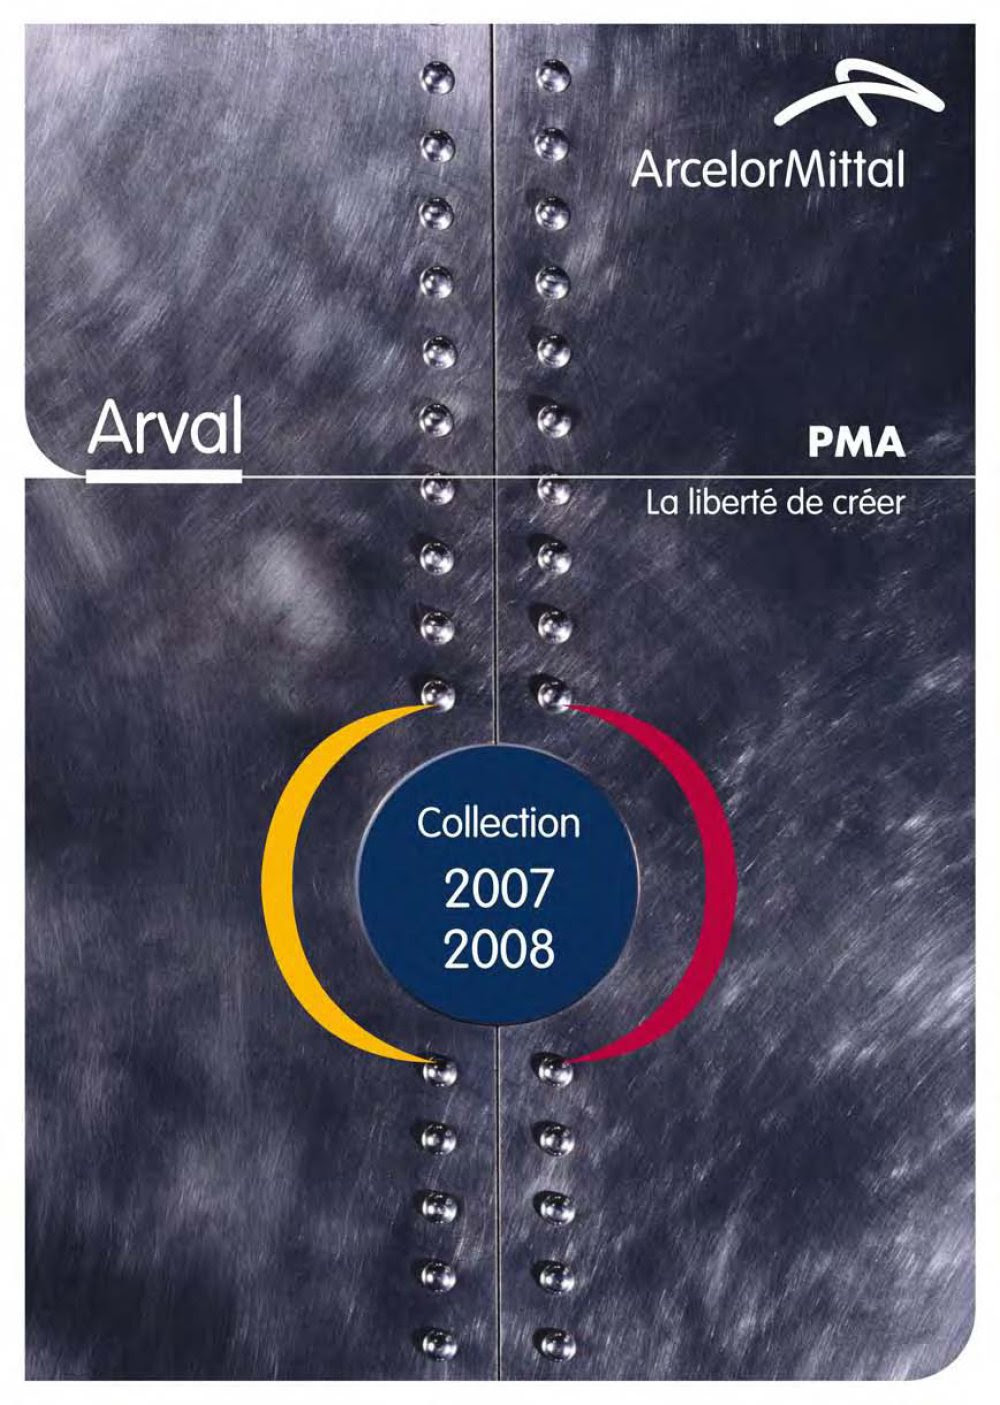 Arval Design Façades Freedom To Create Arcelormittal Long Pdf